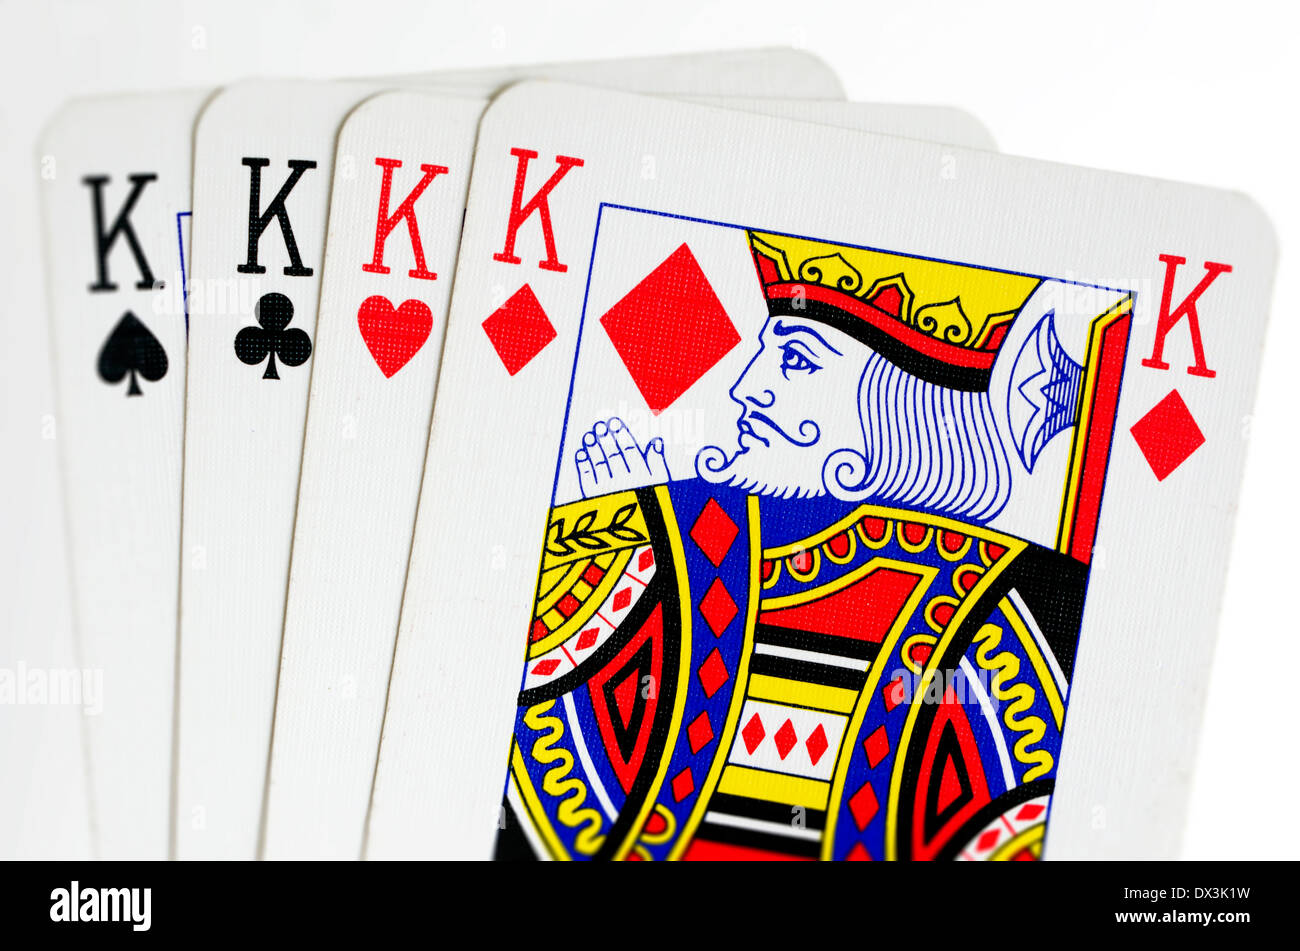 Face cards of four kings playing cards on white background.Concept photo of opportunity, competition, gambling , gamble - Stock Image